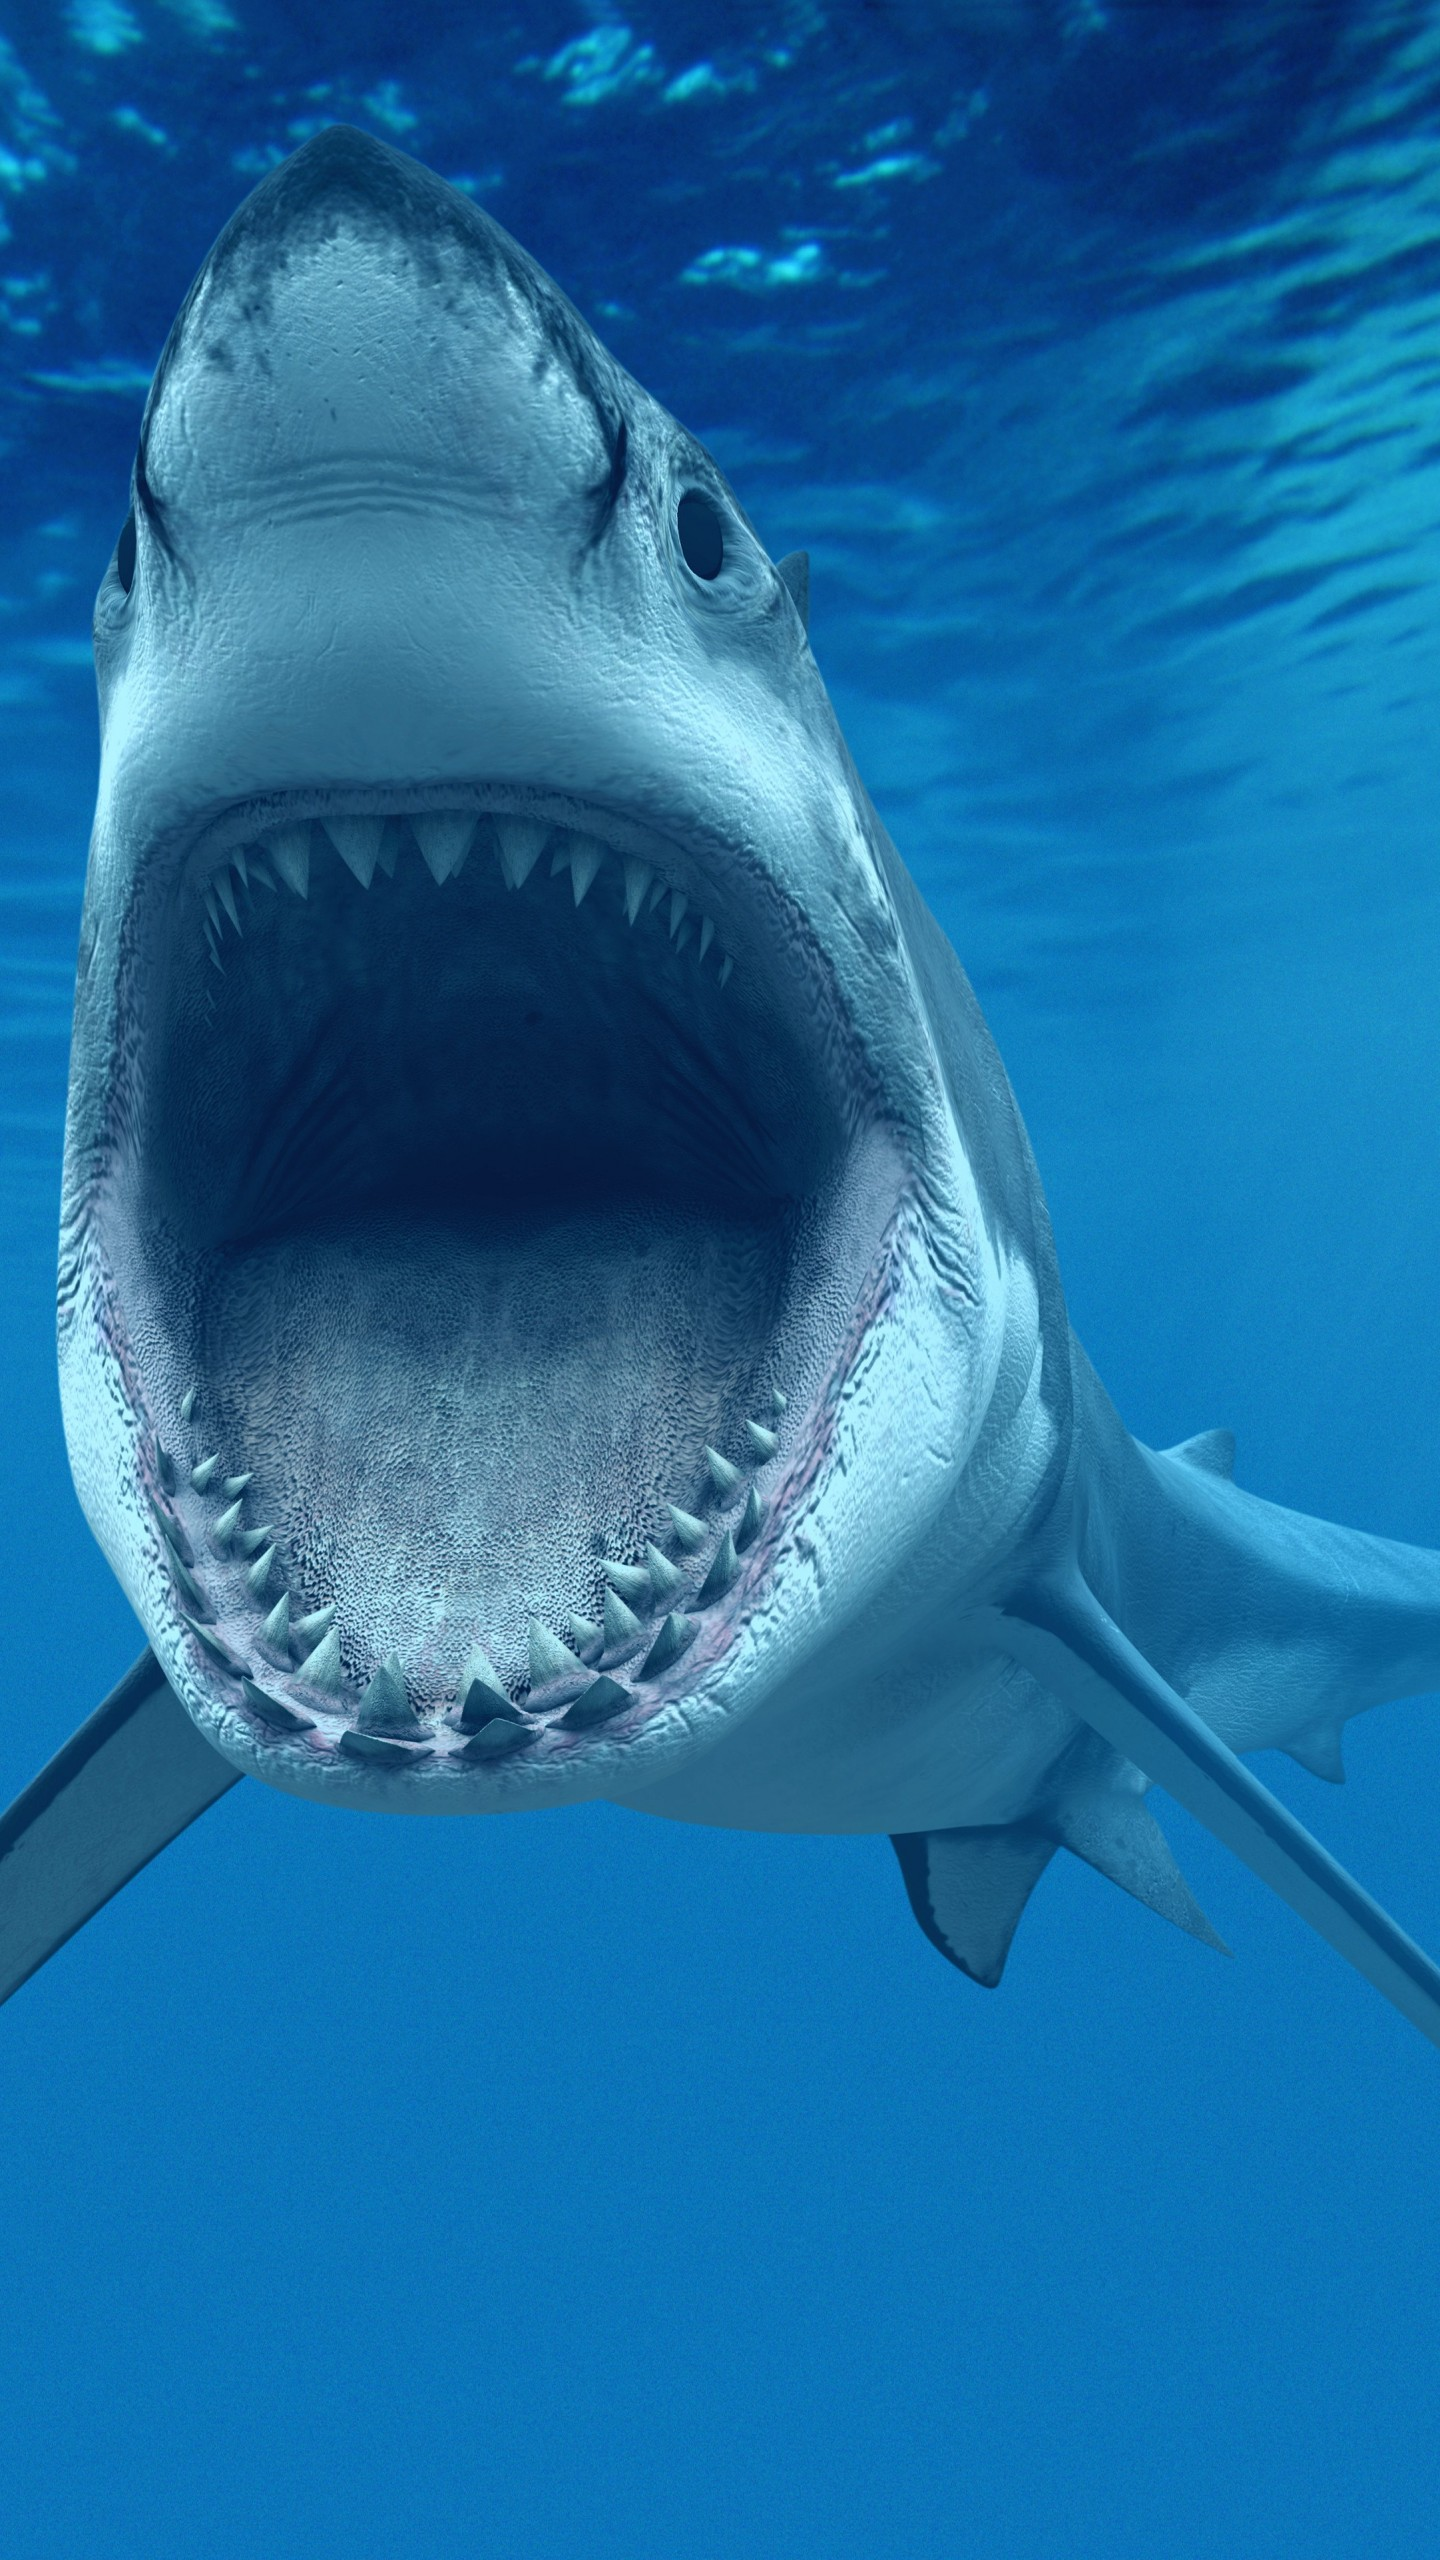 Wallpaper Shark, underwater, Best Diving Sites, Animals #4683